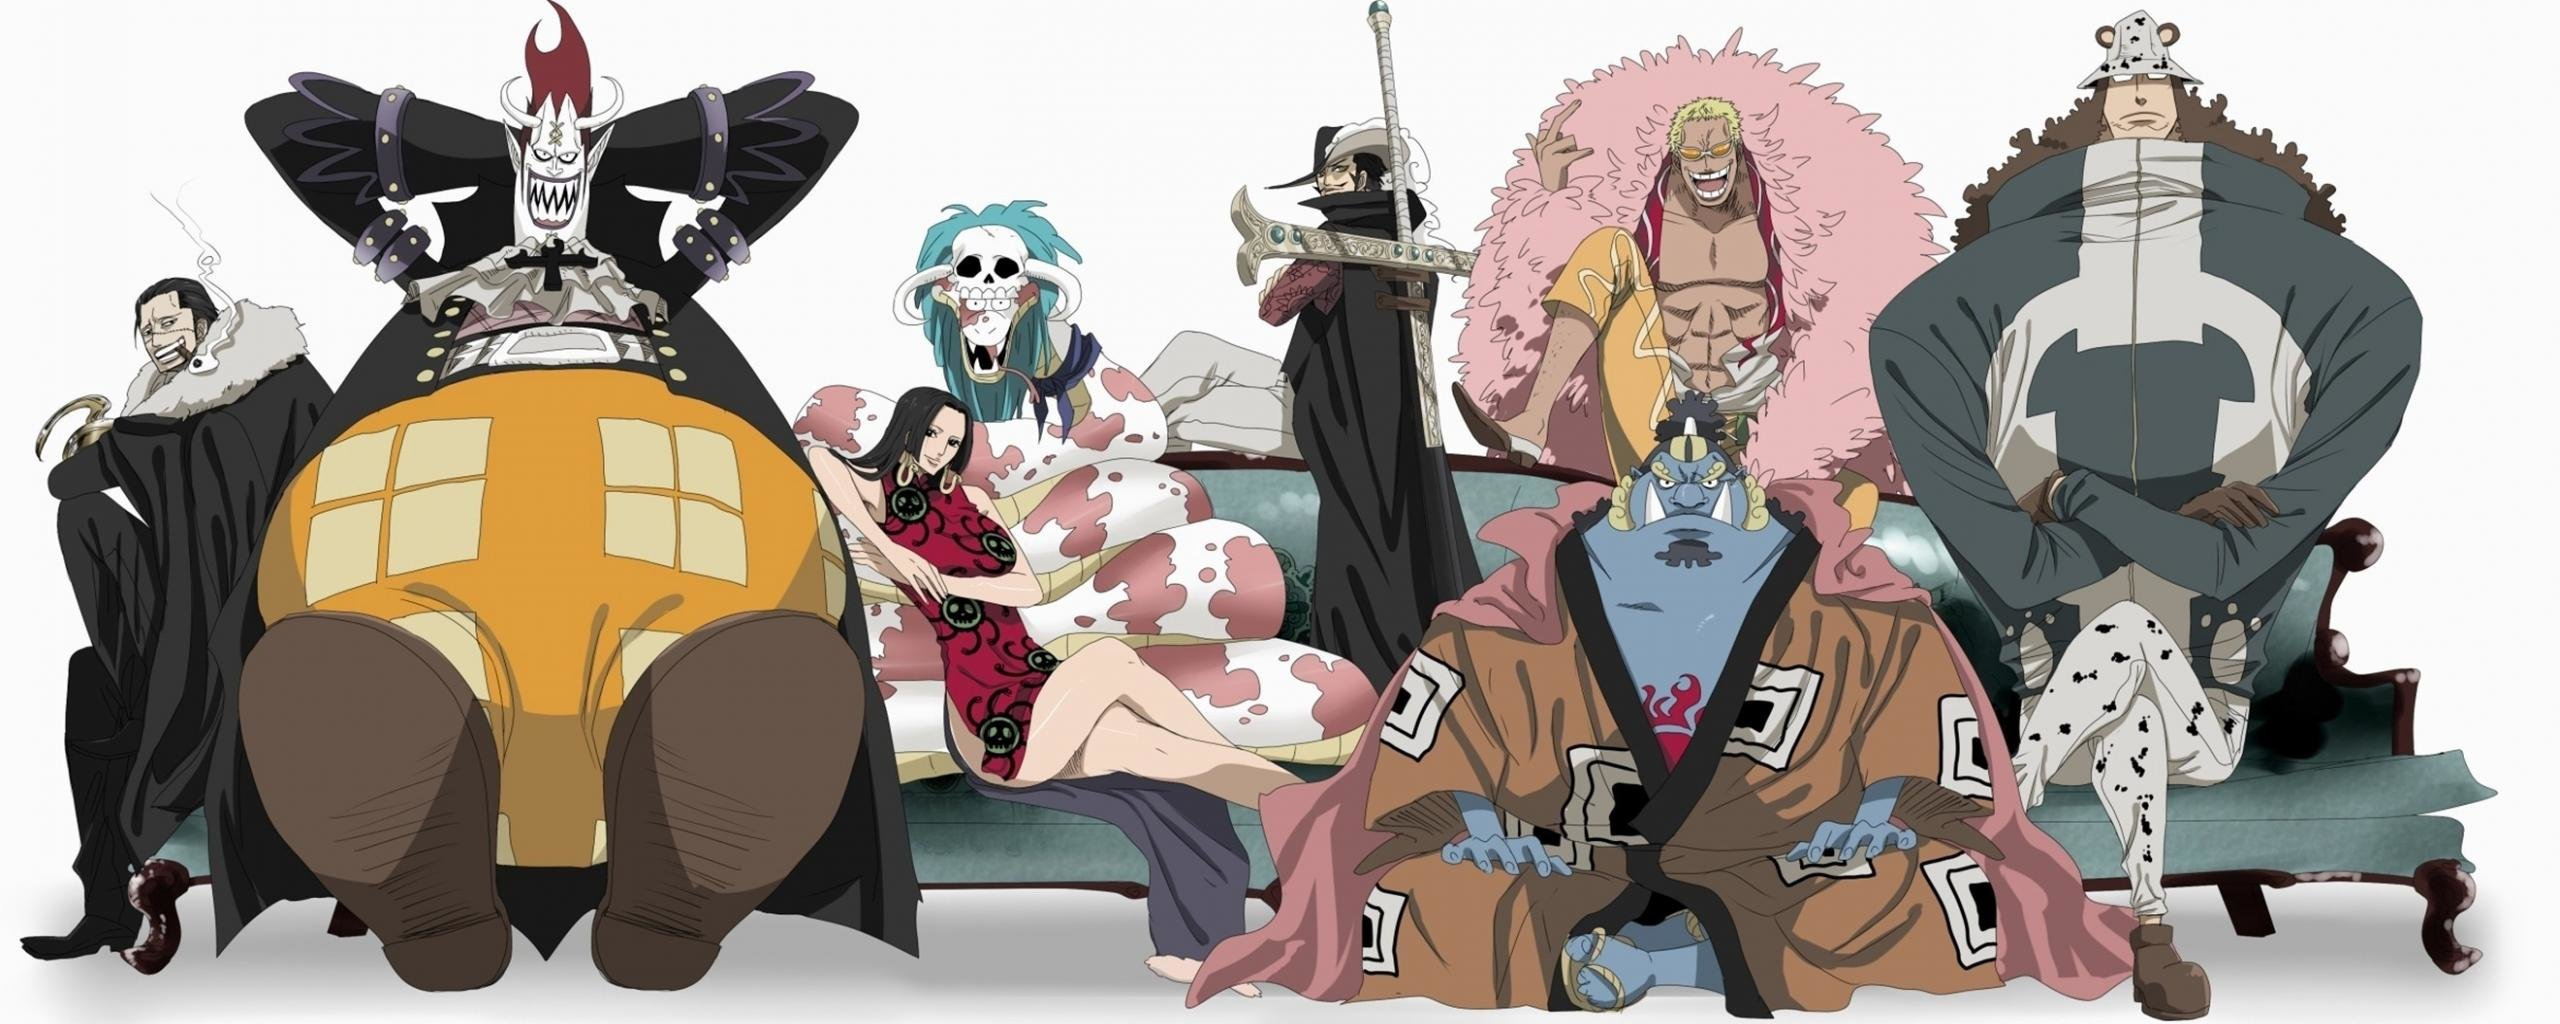 Free download One Piece wallpaper ID:313996 dual monitor 2569x1024 for desktop